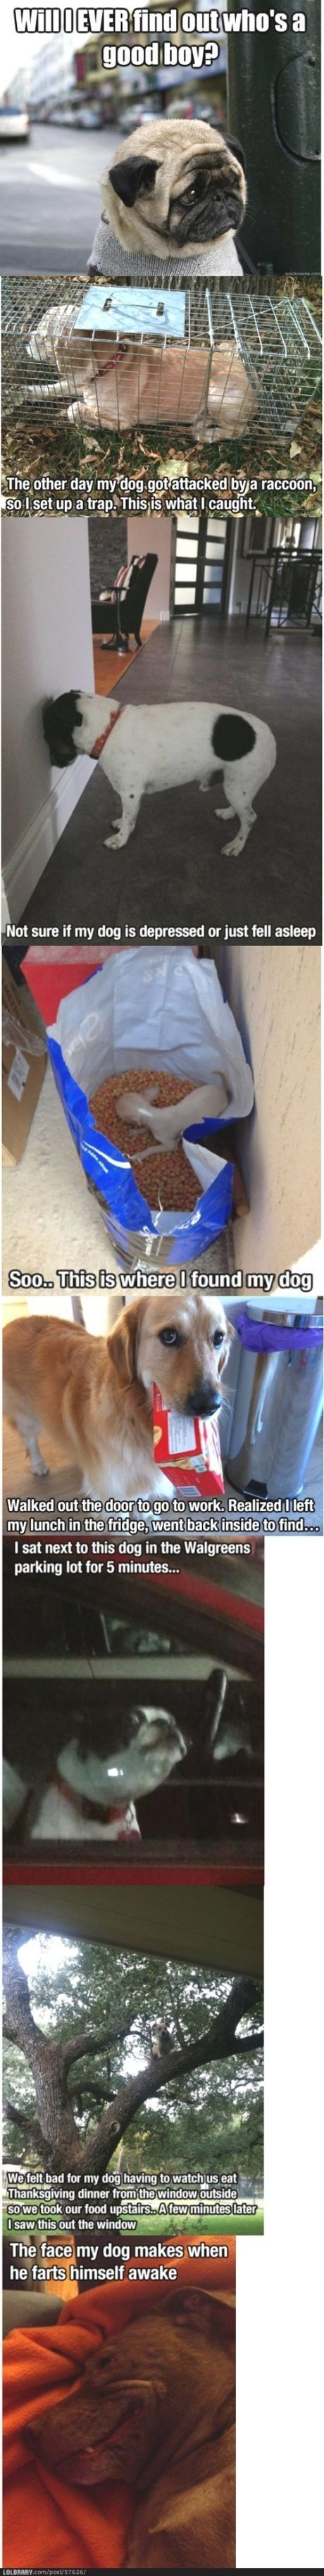 Funny Dog Memes Pictures Photos And Images For Facebook Tumblr - 15 times dogs realized they were going to the vet instead of the park their reactions are priceless